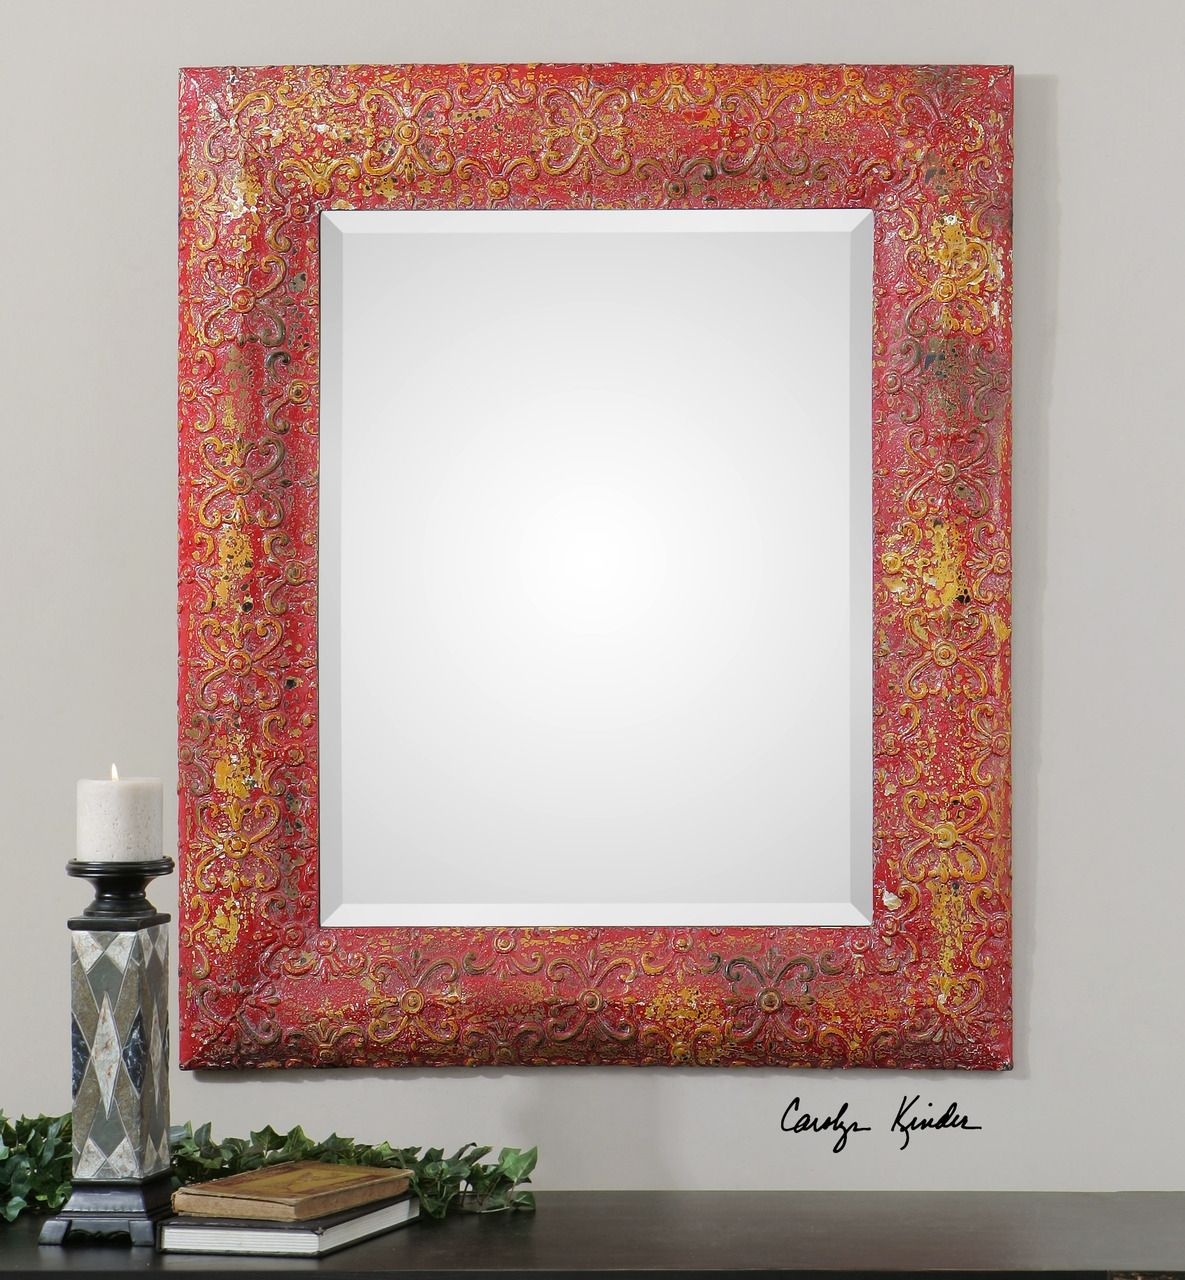 Red Framed Wall Mirrors | http://drrw.us | Pinterest | Mirror ...